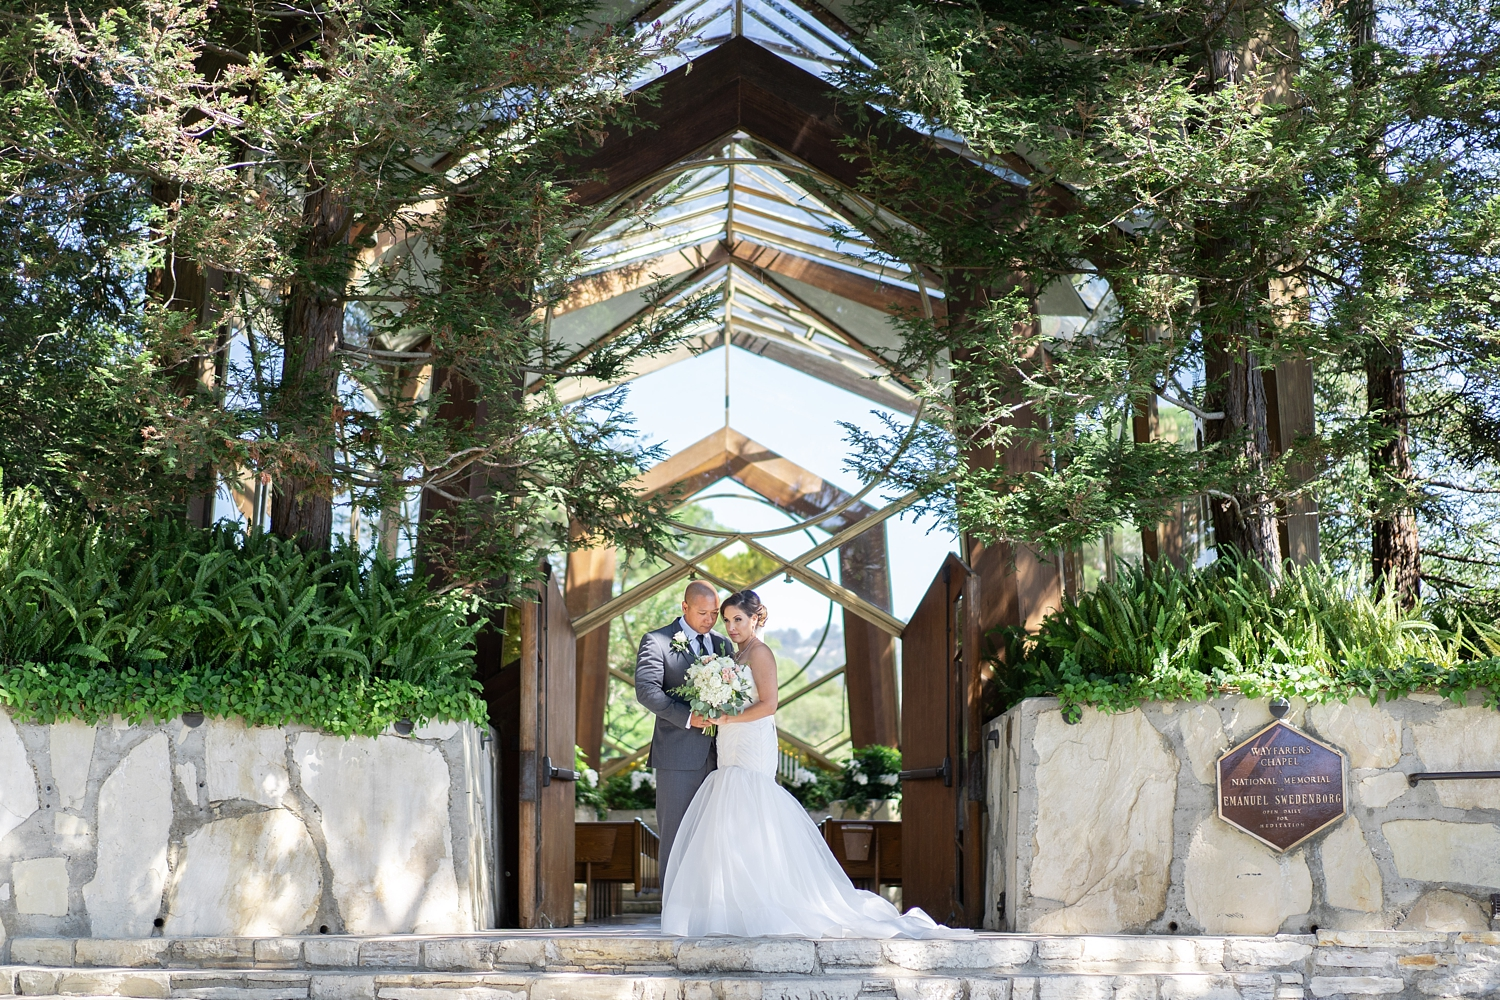 Wayfarers Chapel Wedding.Wayfarers Chapel Wedding Archives Los Angeles Wedding Photography